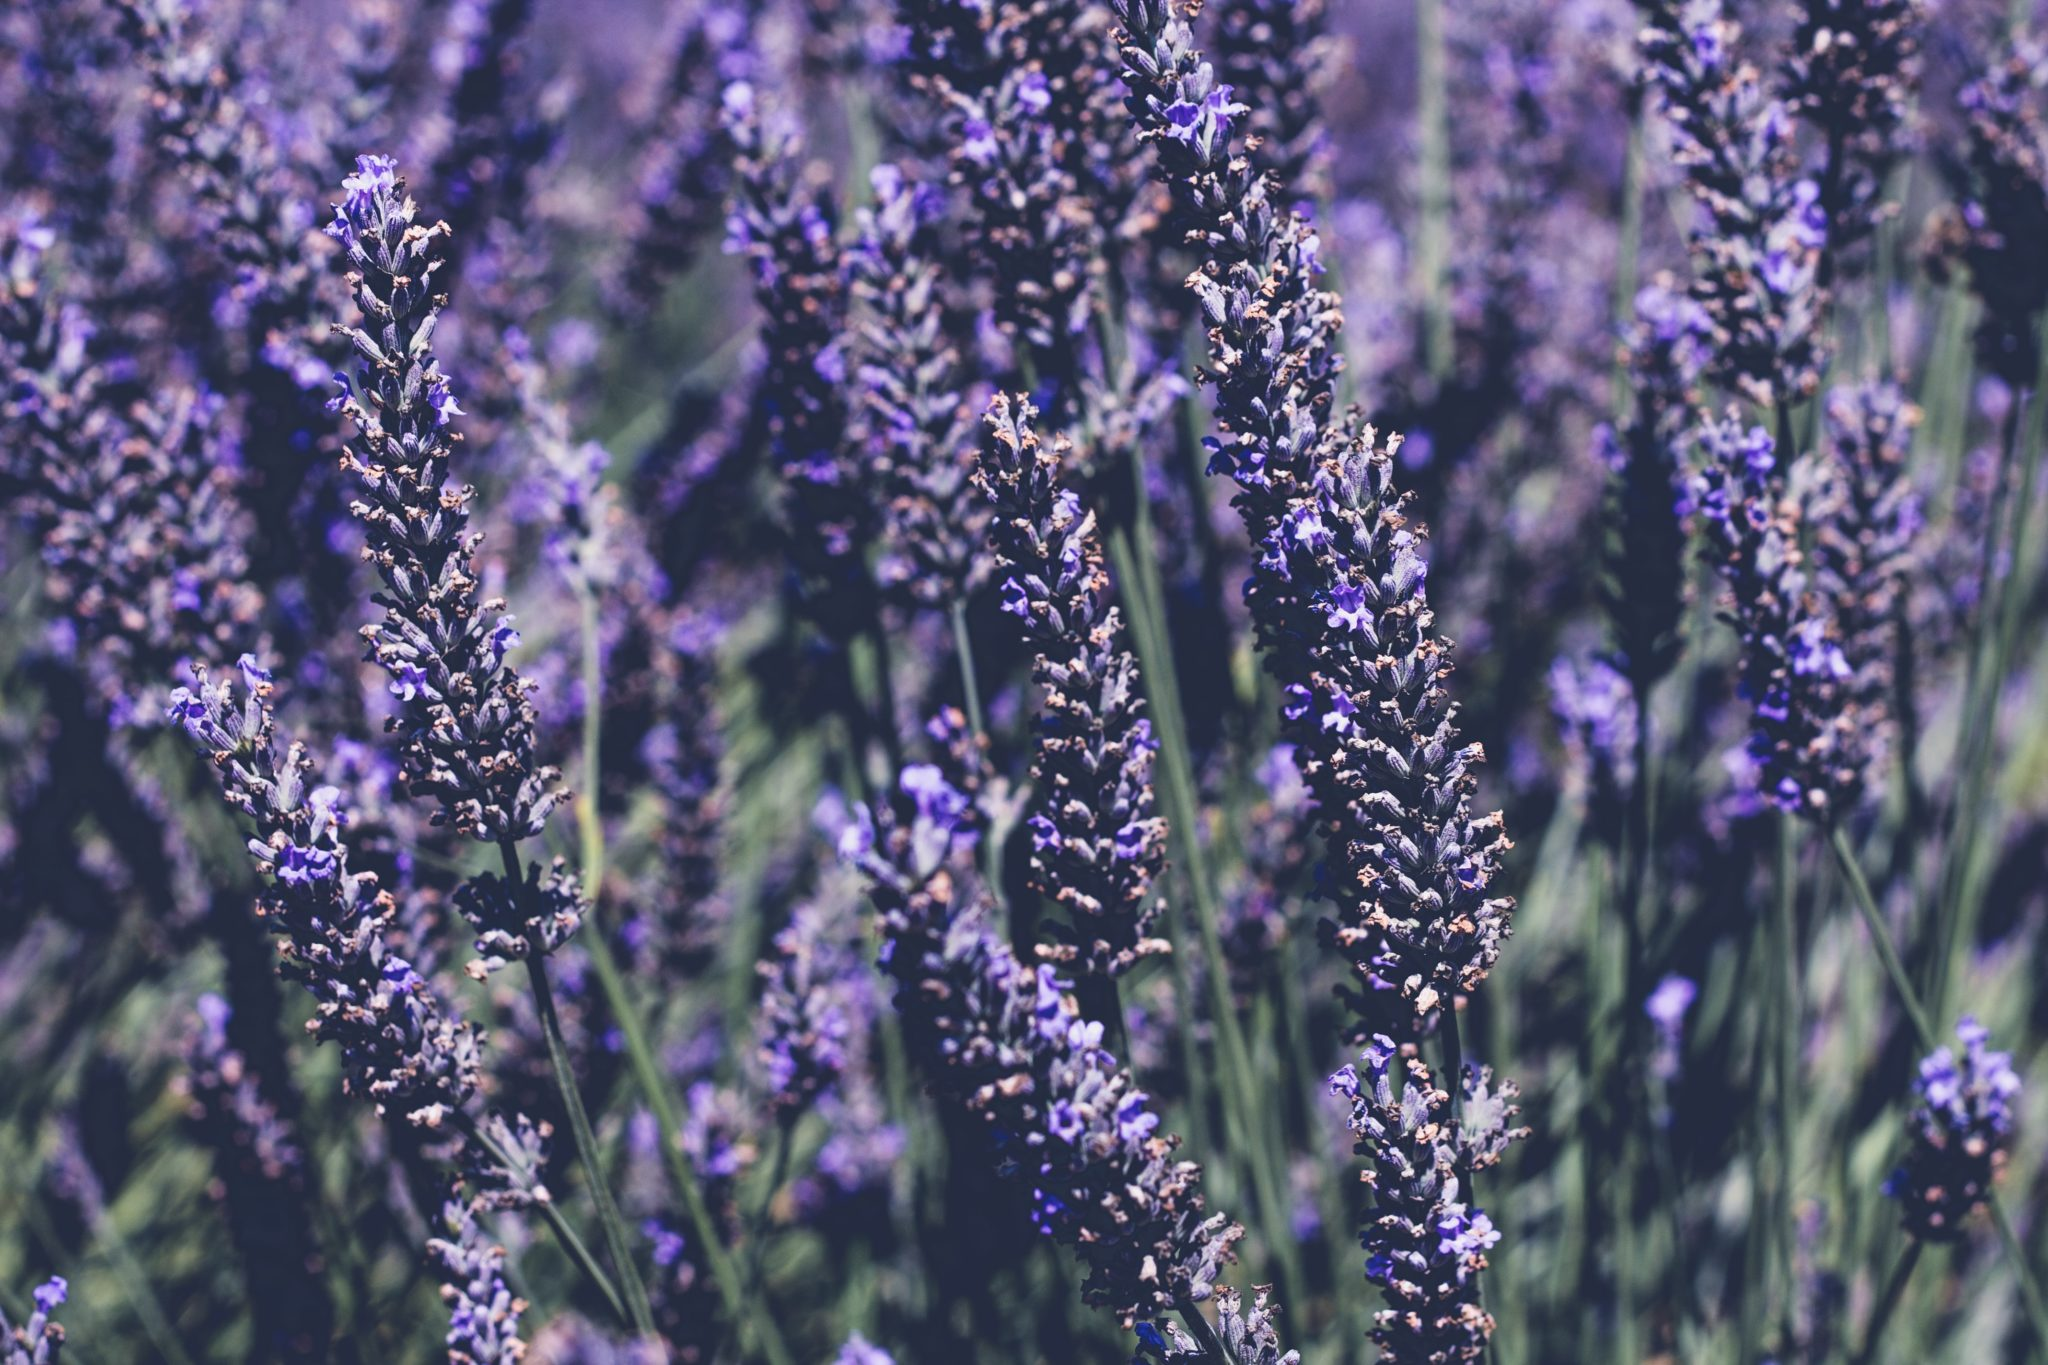 Lavender is a powerful antioxidant for protecting your skin.